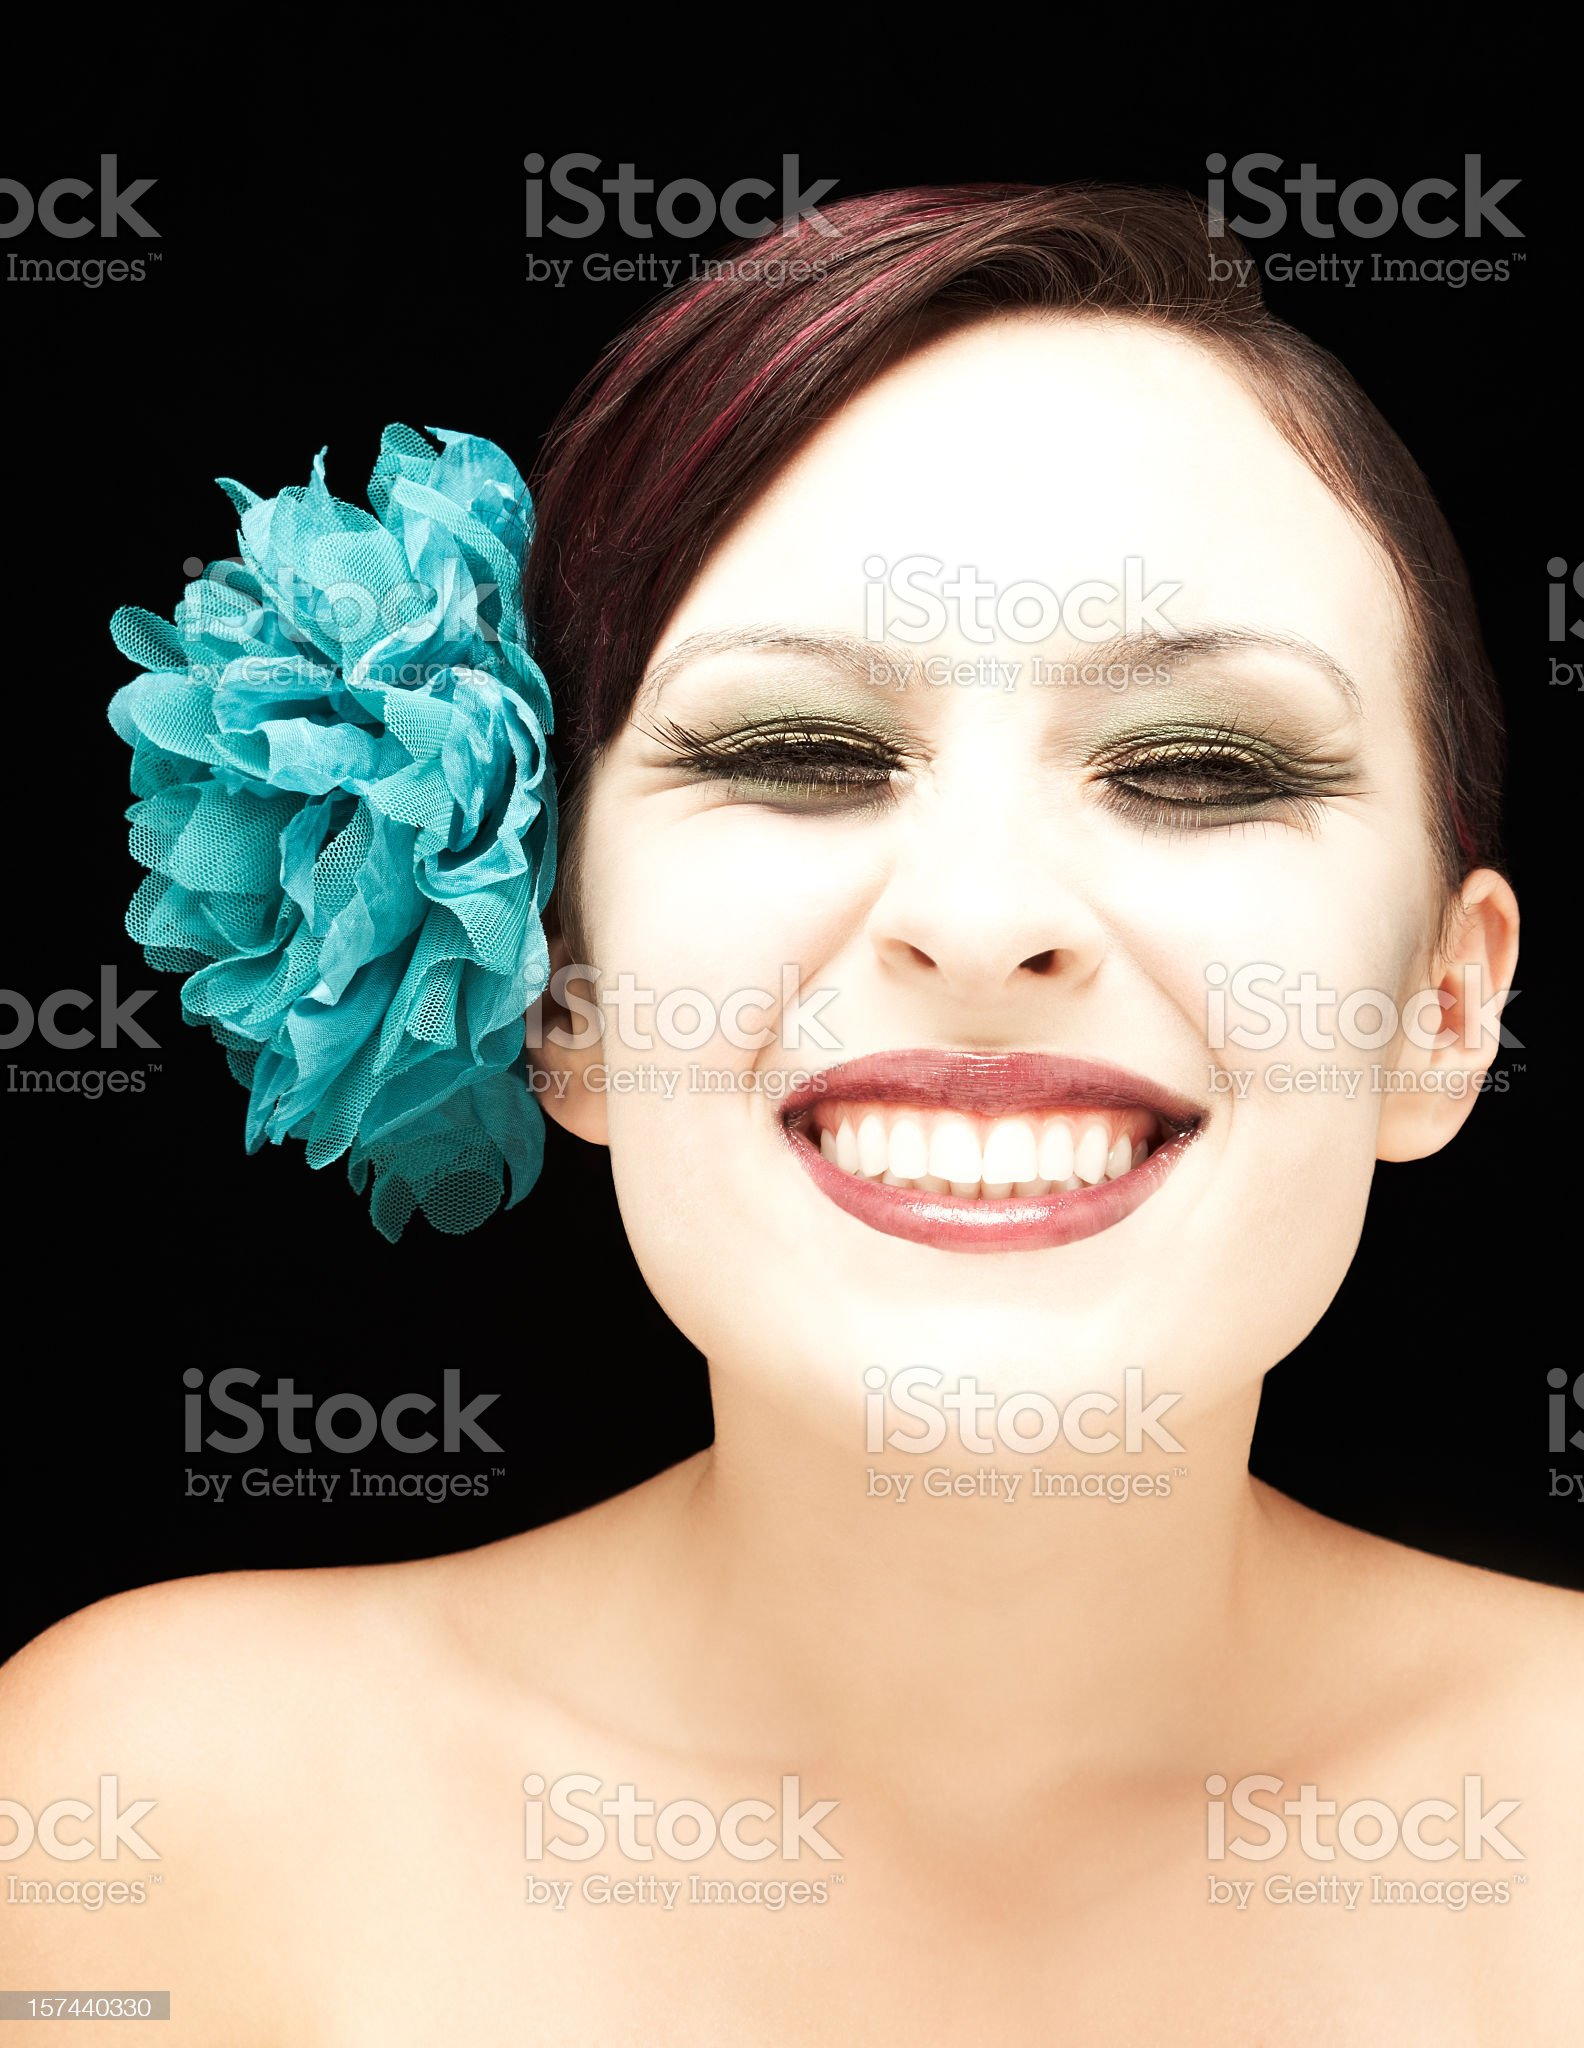 Woman Wearing Large Hair Ornament royalty-free stock photo